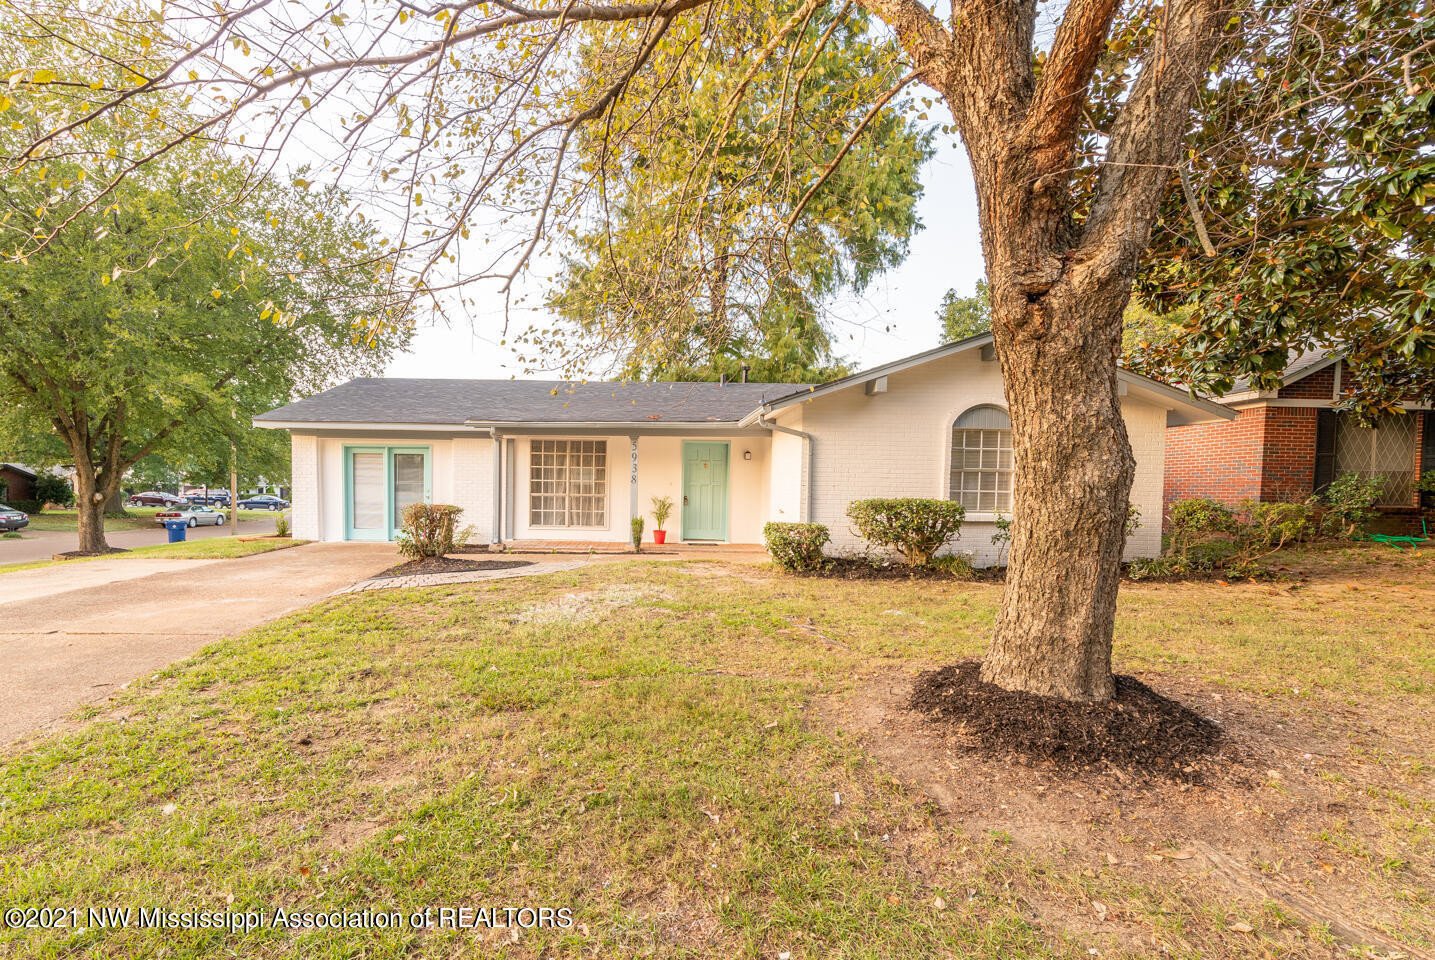 Renovated 3-Bedroom House In Horn Lake